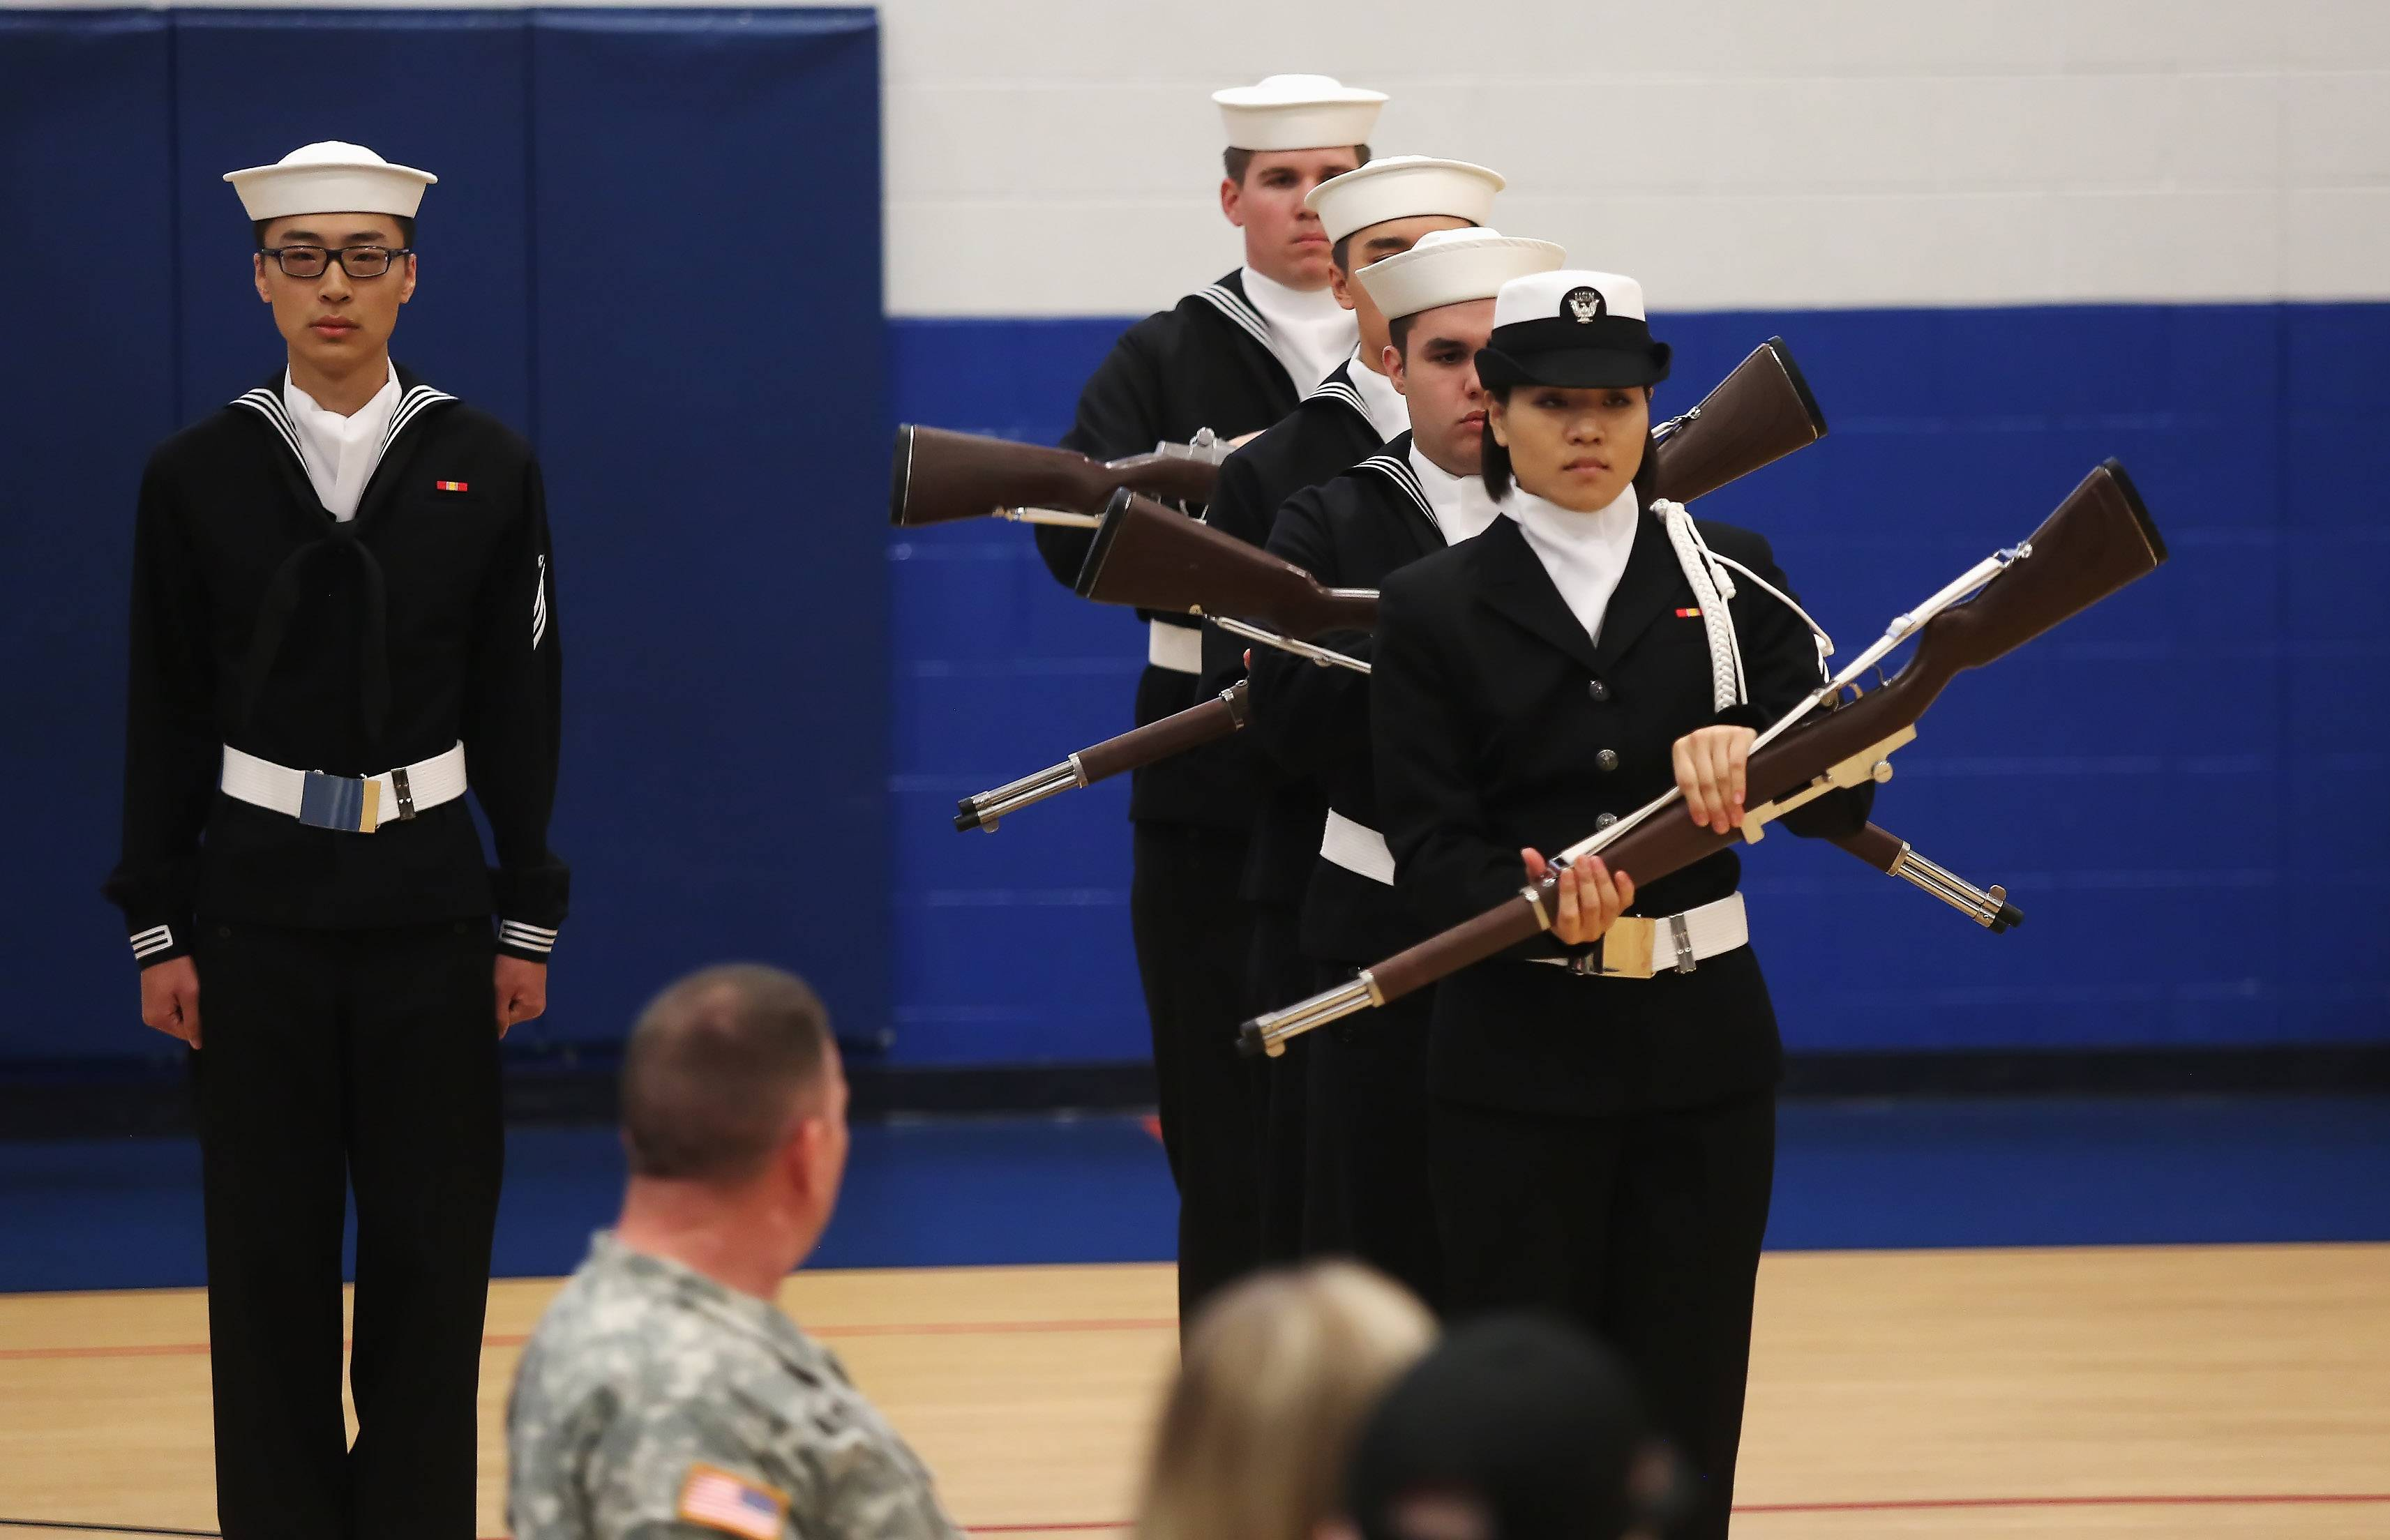 The Drill Team from Great Lakes Naval Station performs during the Veterans Day assembly Tuesday at Frederick School in Grayslake. The event was one of many held across Lake County on Tuesday to honor local veterans.